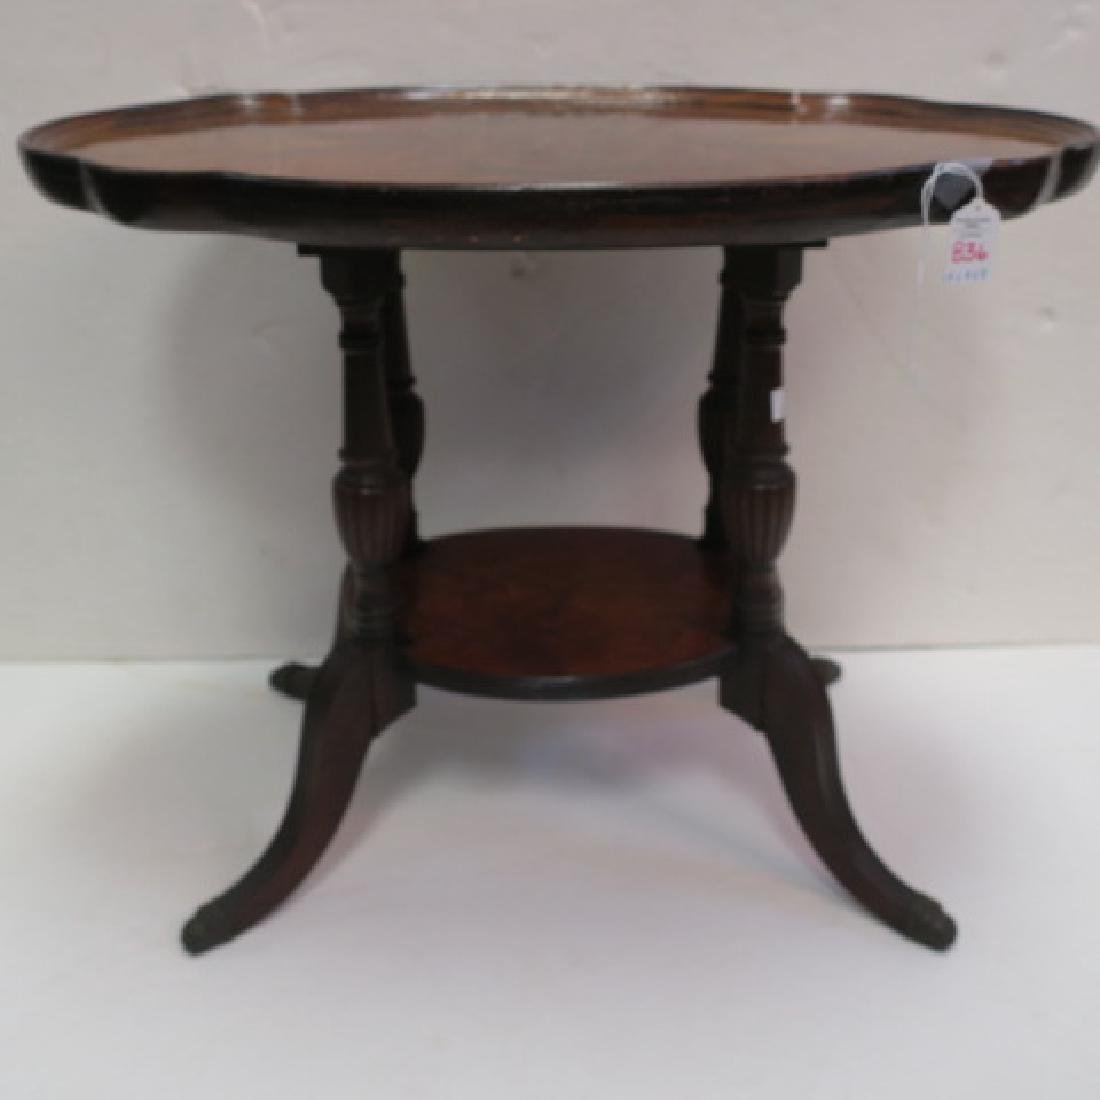 Figured Walnut Oval Two Tiered Side Table: - 4